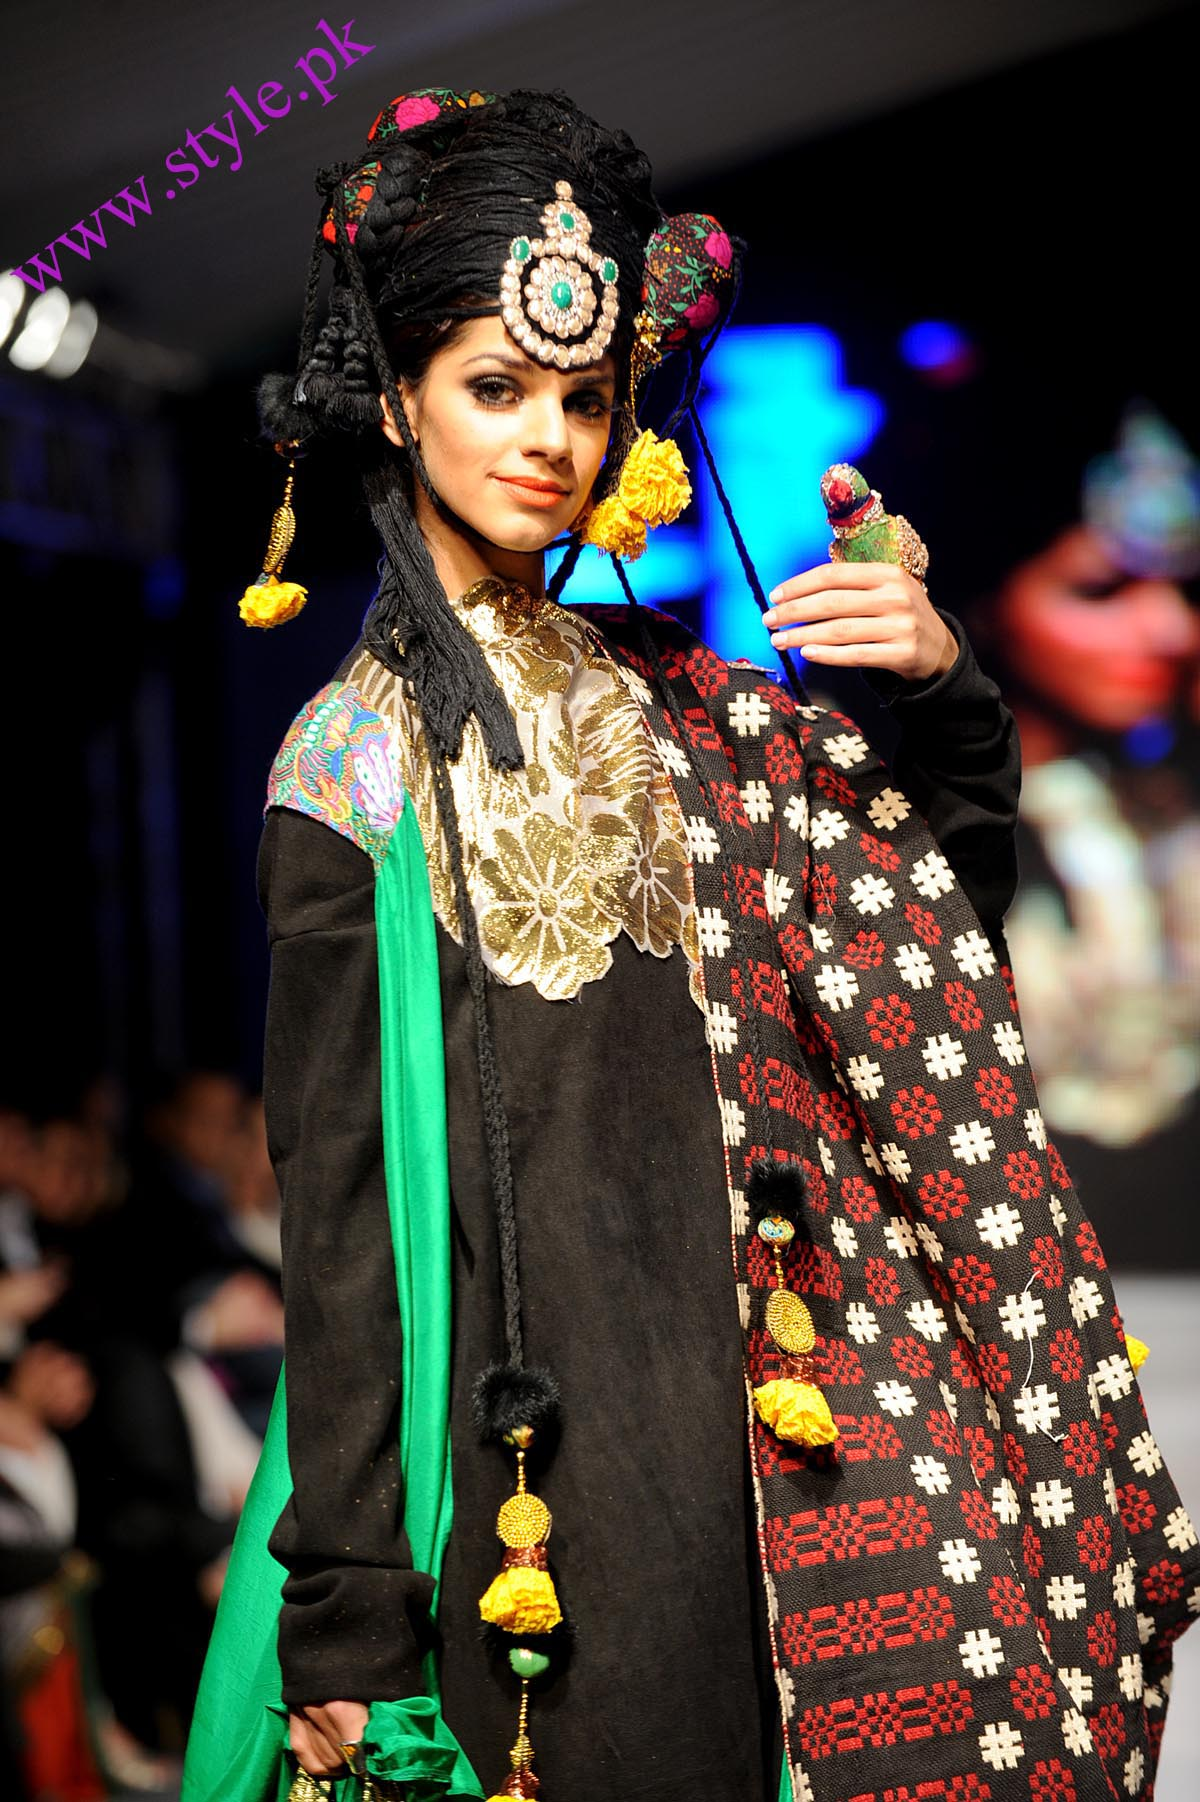 Ali xeeshan collection at Lahore fashion week